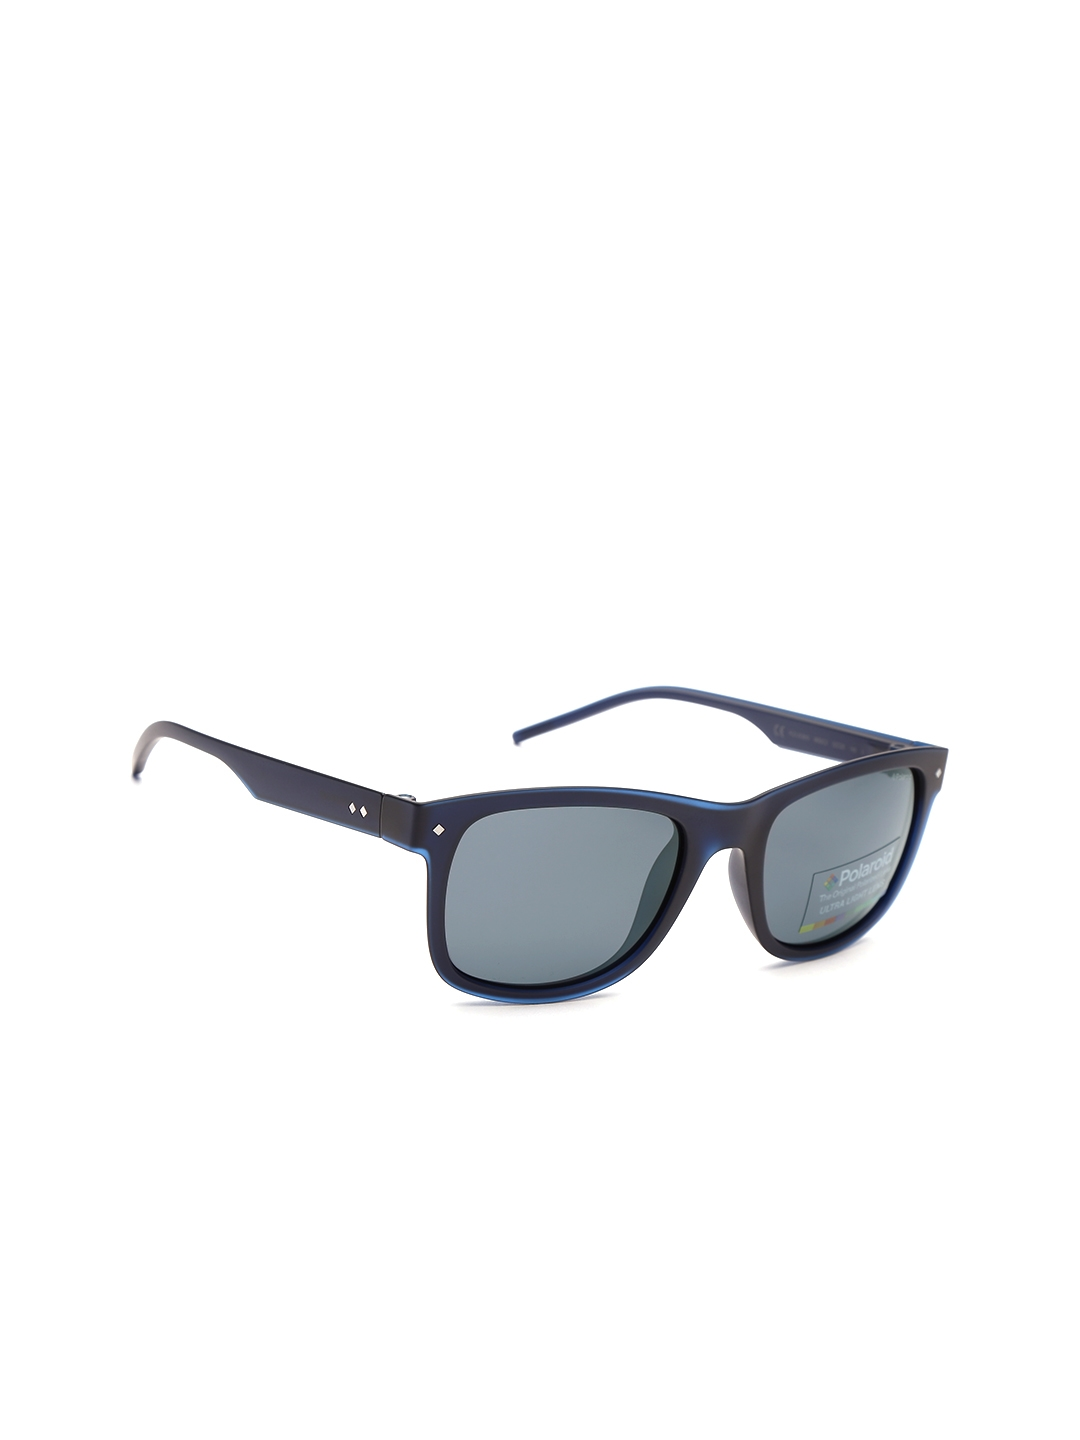 faa3b33f392 Buy Polaroid Men Polarised Wayfarer Sunglasses 2038 S M3Q 52C3 ...